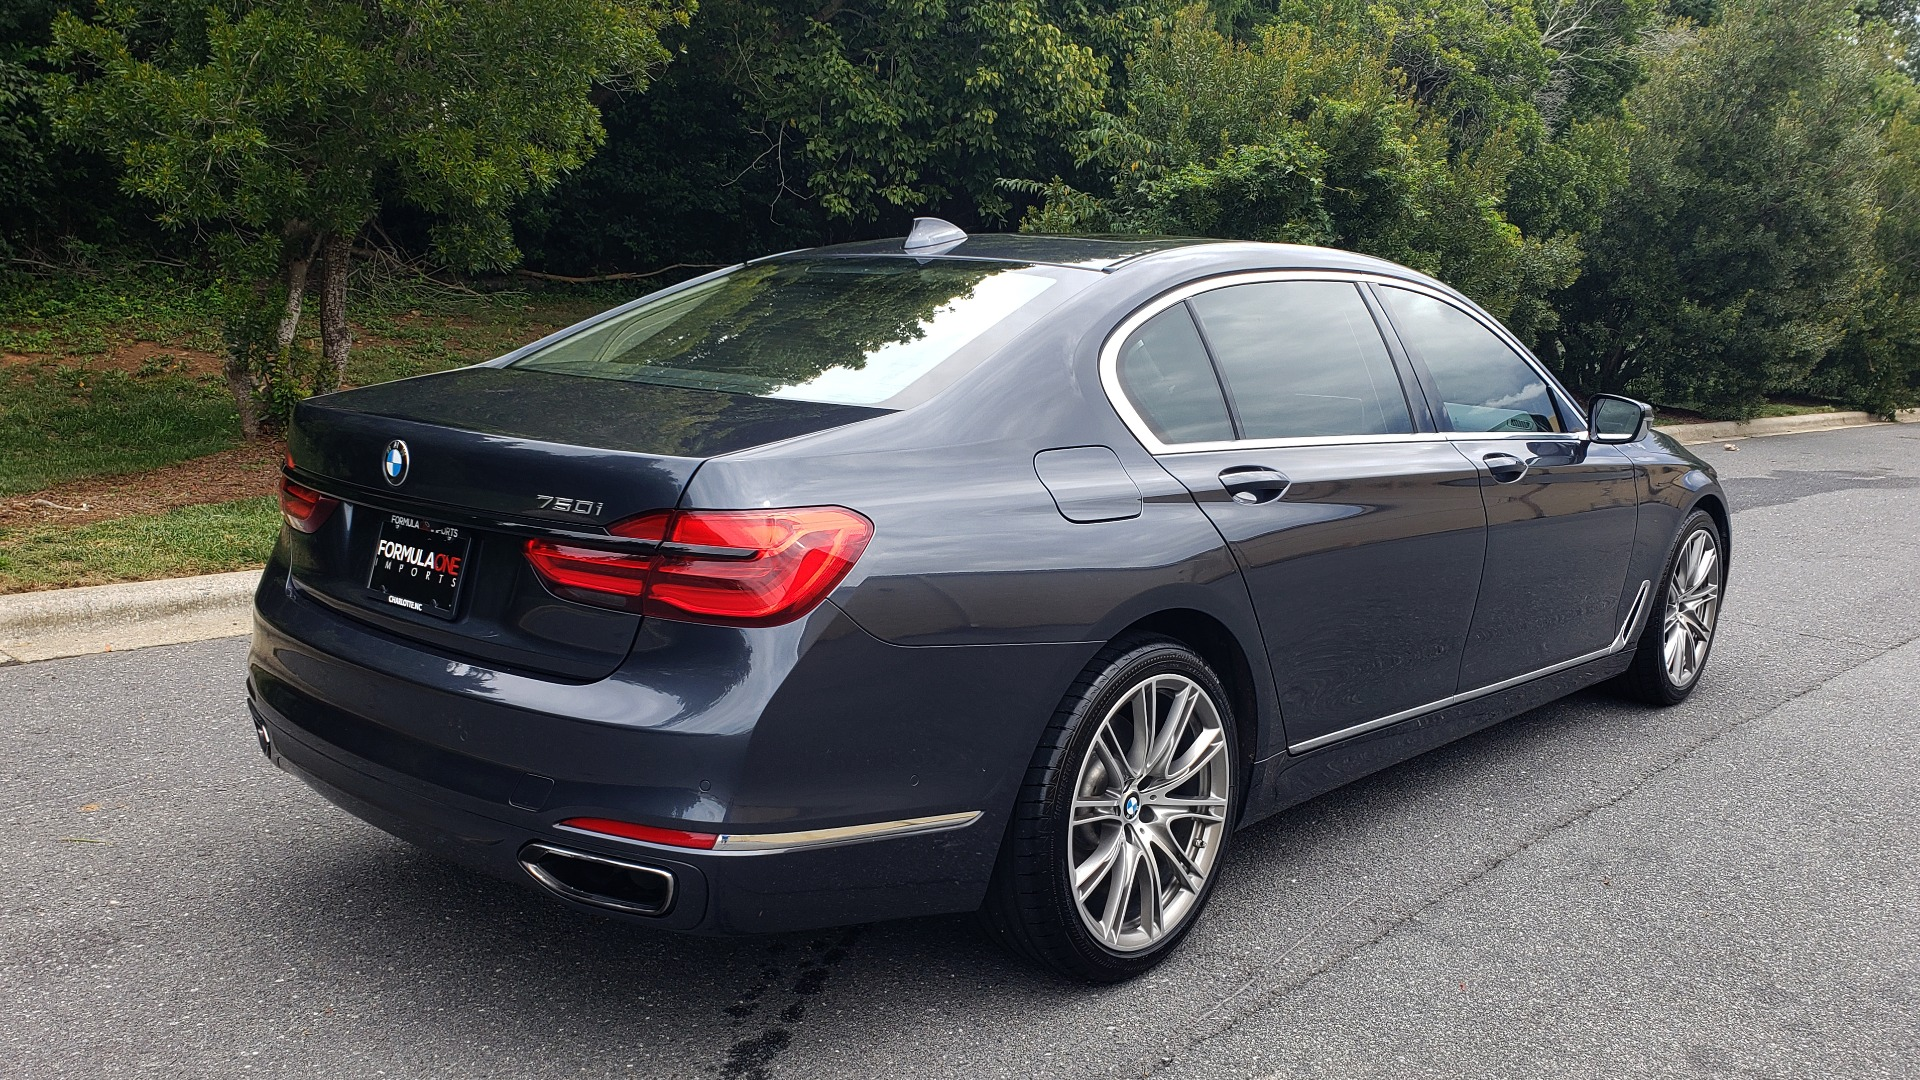 Used 2016 BMW 7 SERIES 750I EXEC PKG / DRVR ASST PLUS / CLD WTHR / SKY LOUNGE ROOF for sale Sold at Formula Imports in Charlotte NC 28227 6